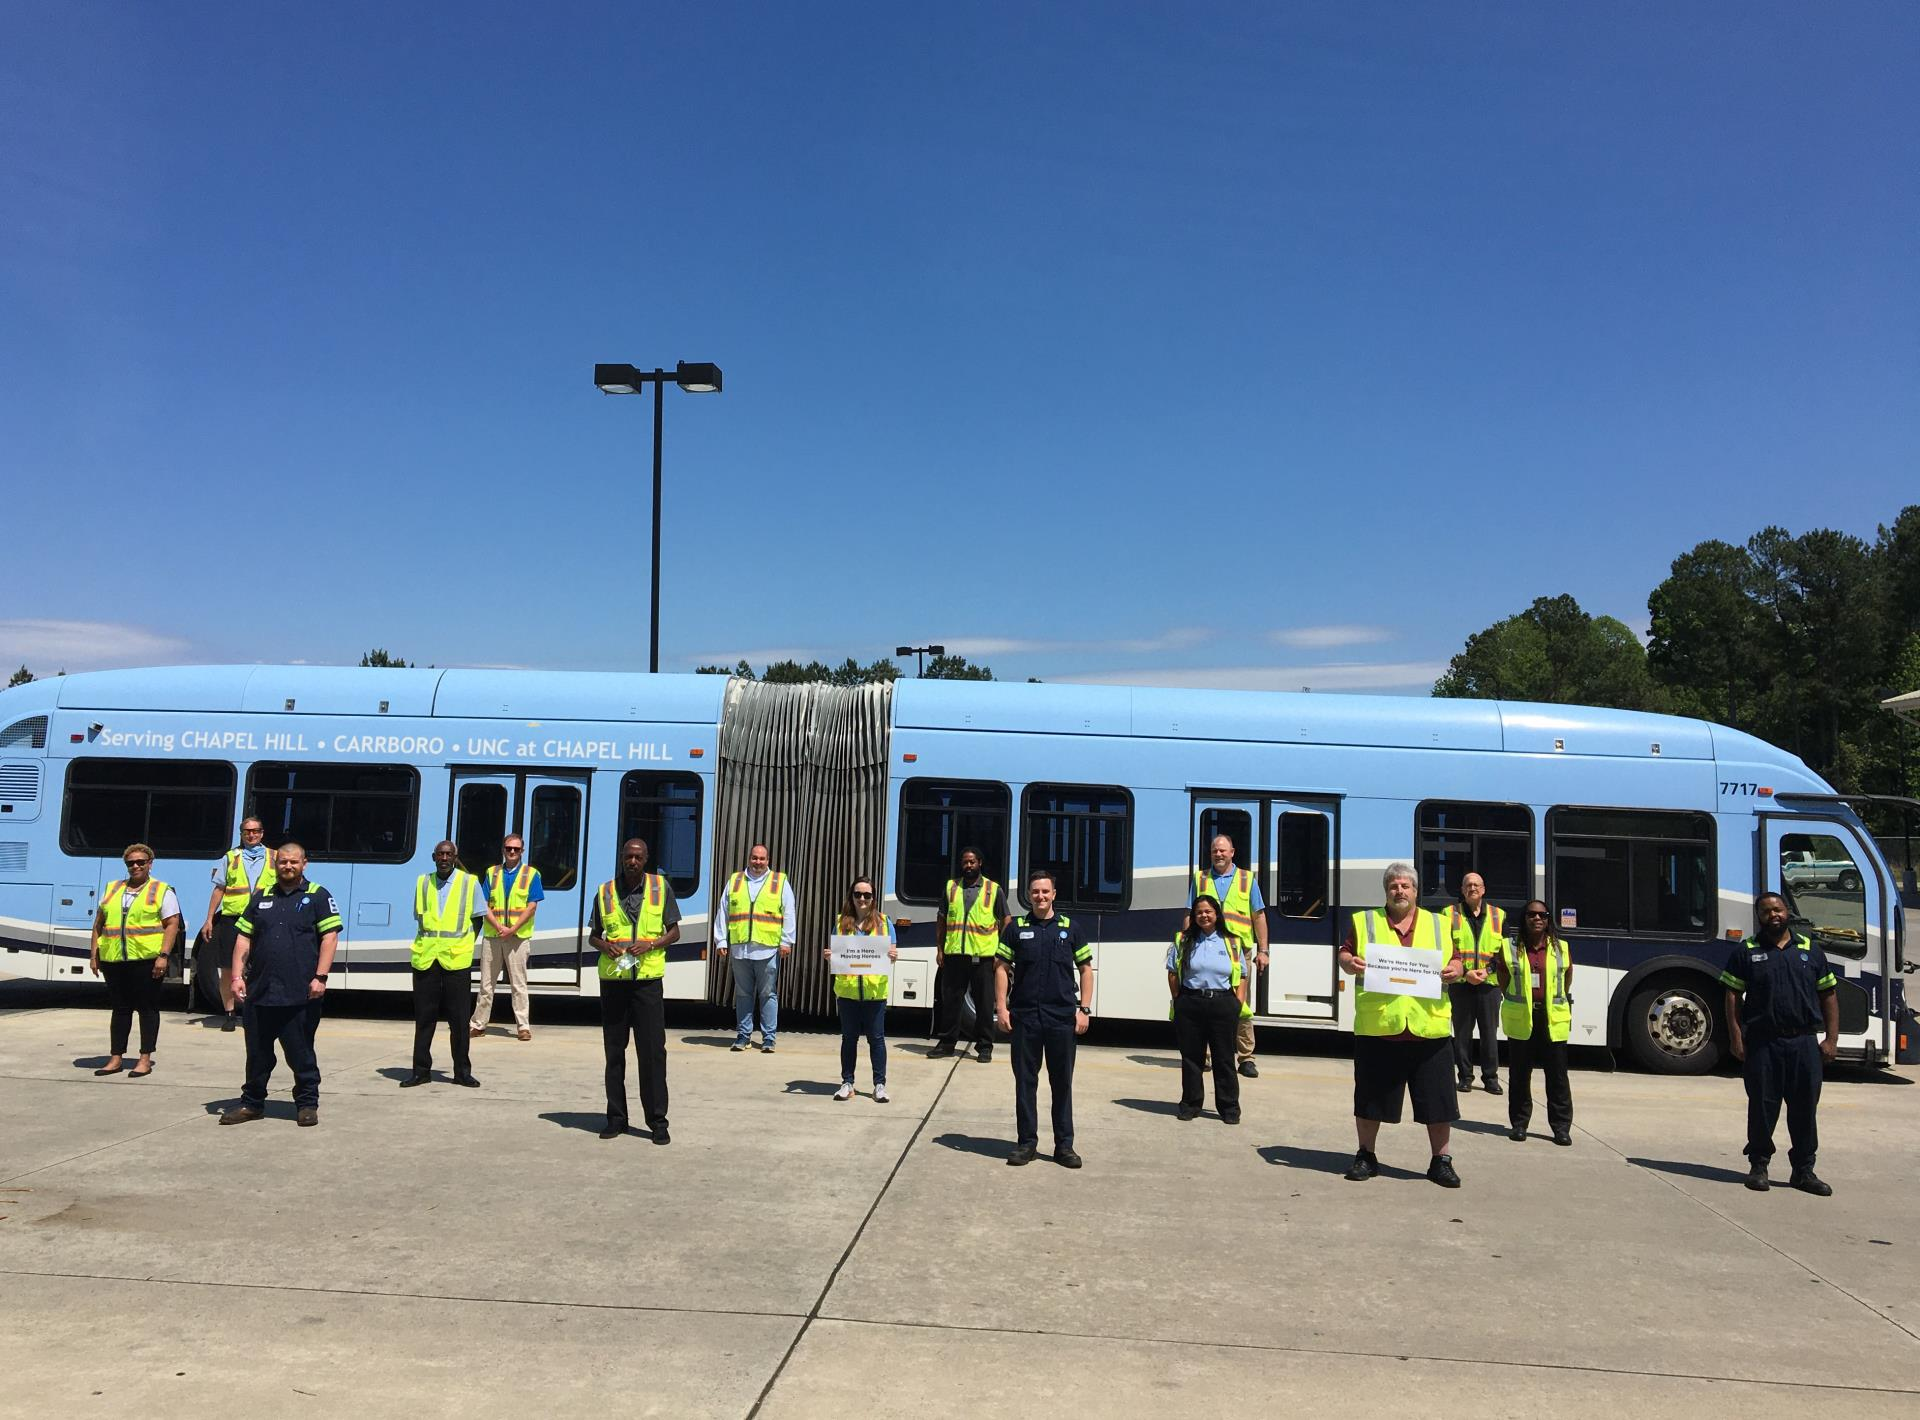 Chapel Hill Transit employees pose for a group photo